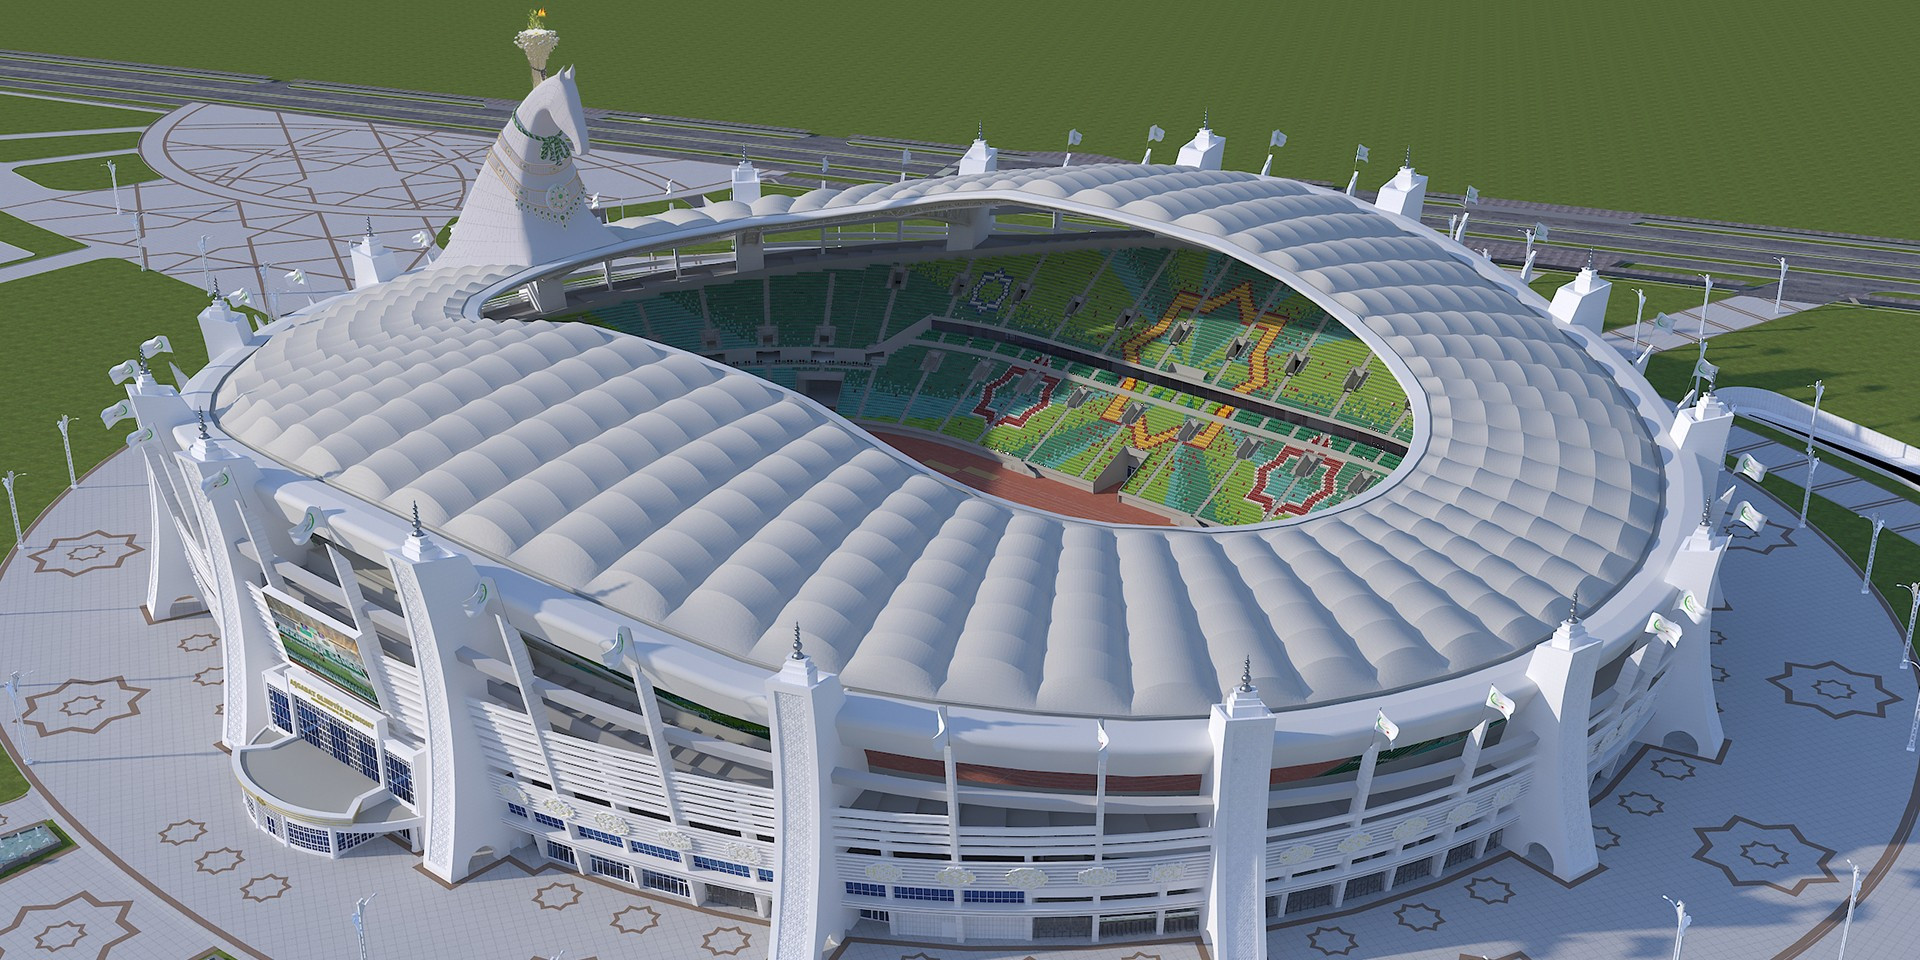 The newly-built Ashgabat Olympic Stadium will host the Opening and Closing Ceremonies of the 2017 Asian Indoor and Martial Arts Games ©Ashgabat 2017